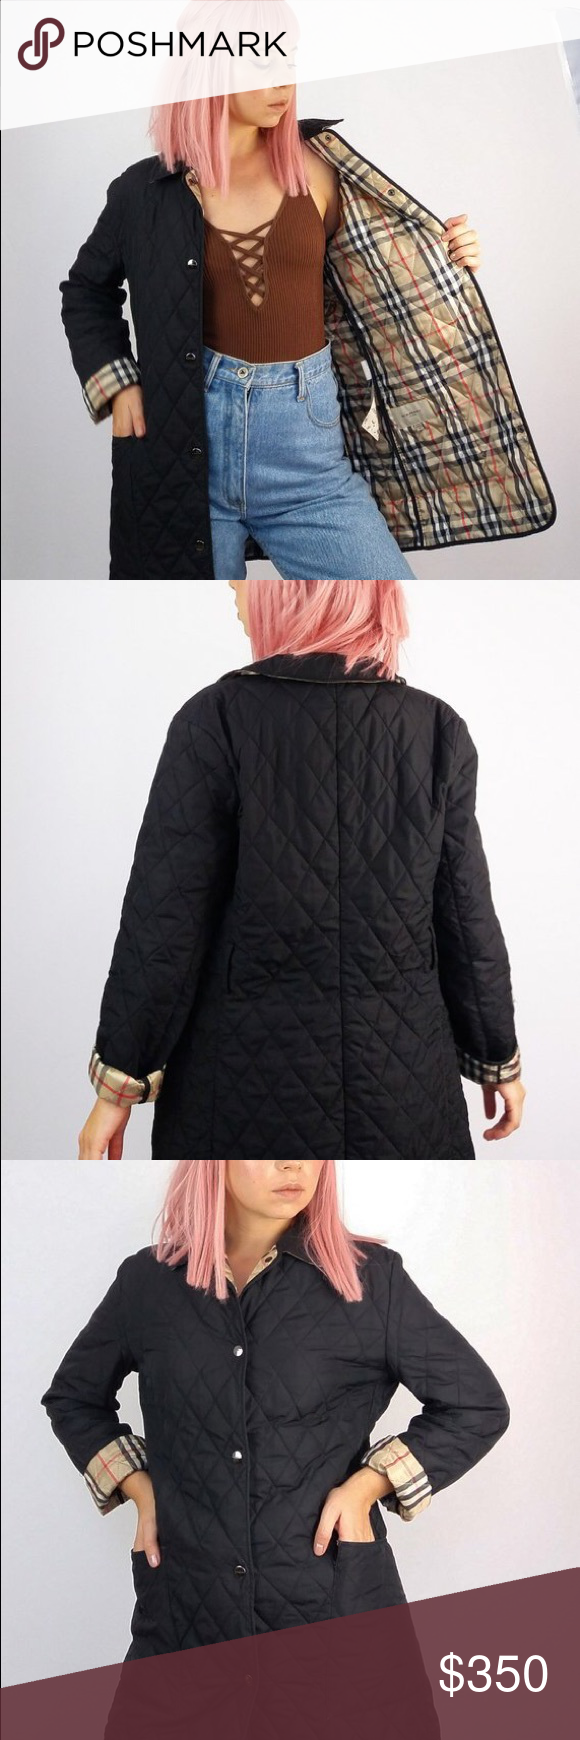 Black Vintage Burberry Quilted Jacket Small Burberry Quilted Jacket Clothes Design Quilted Jacket